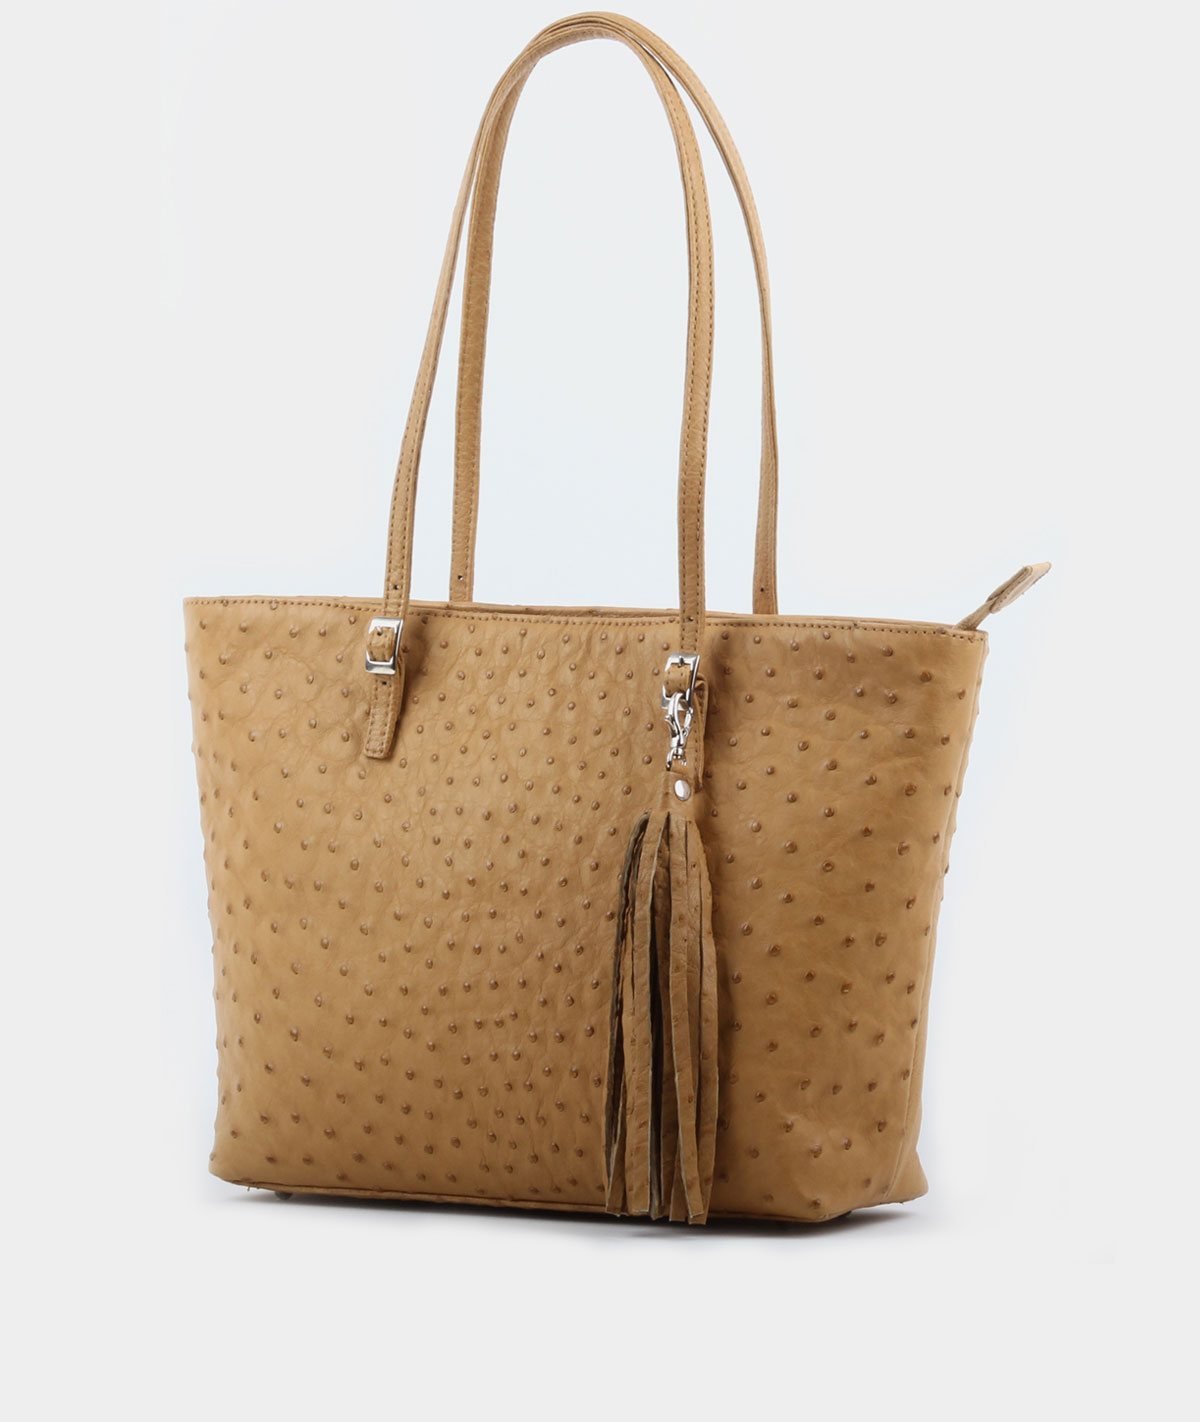 TOTE WITH TASSLES